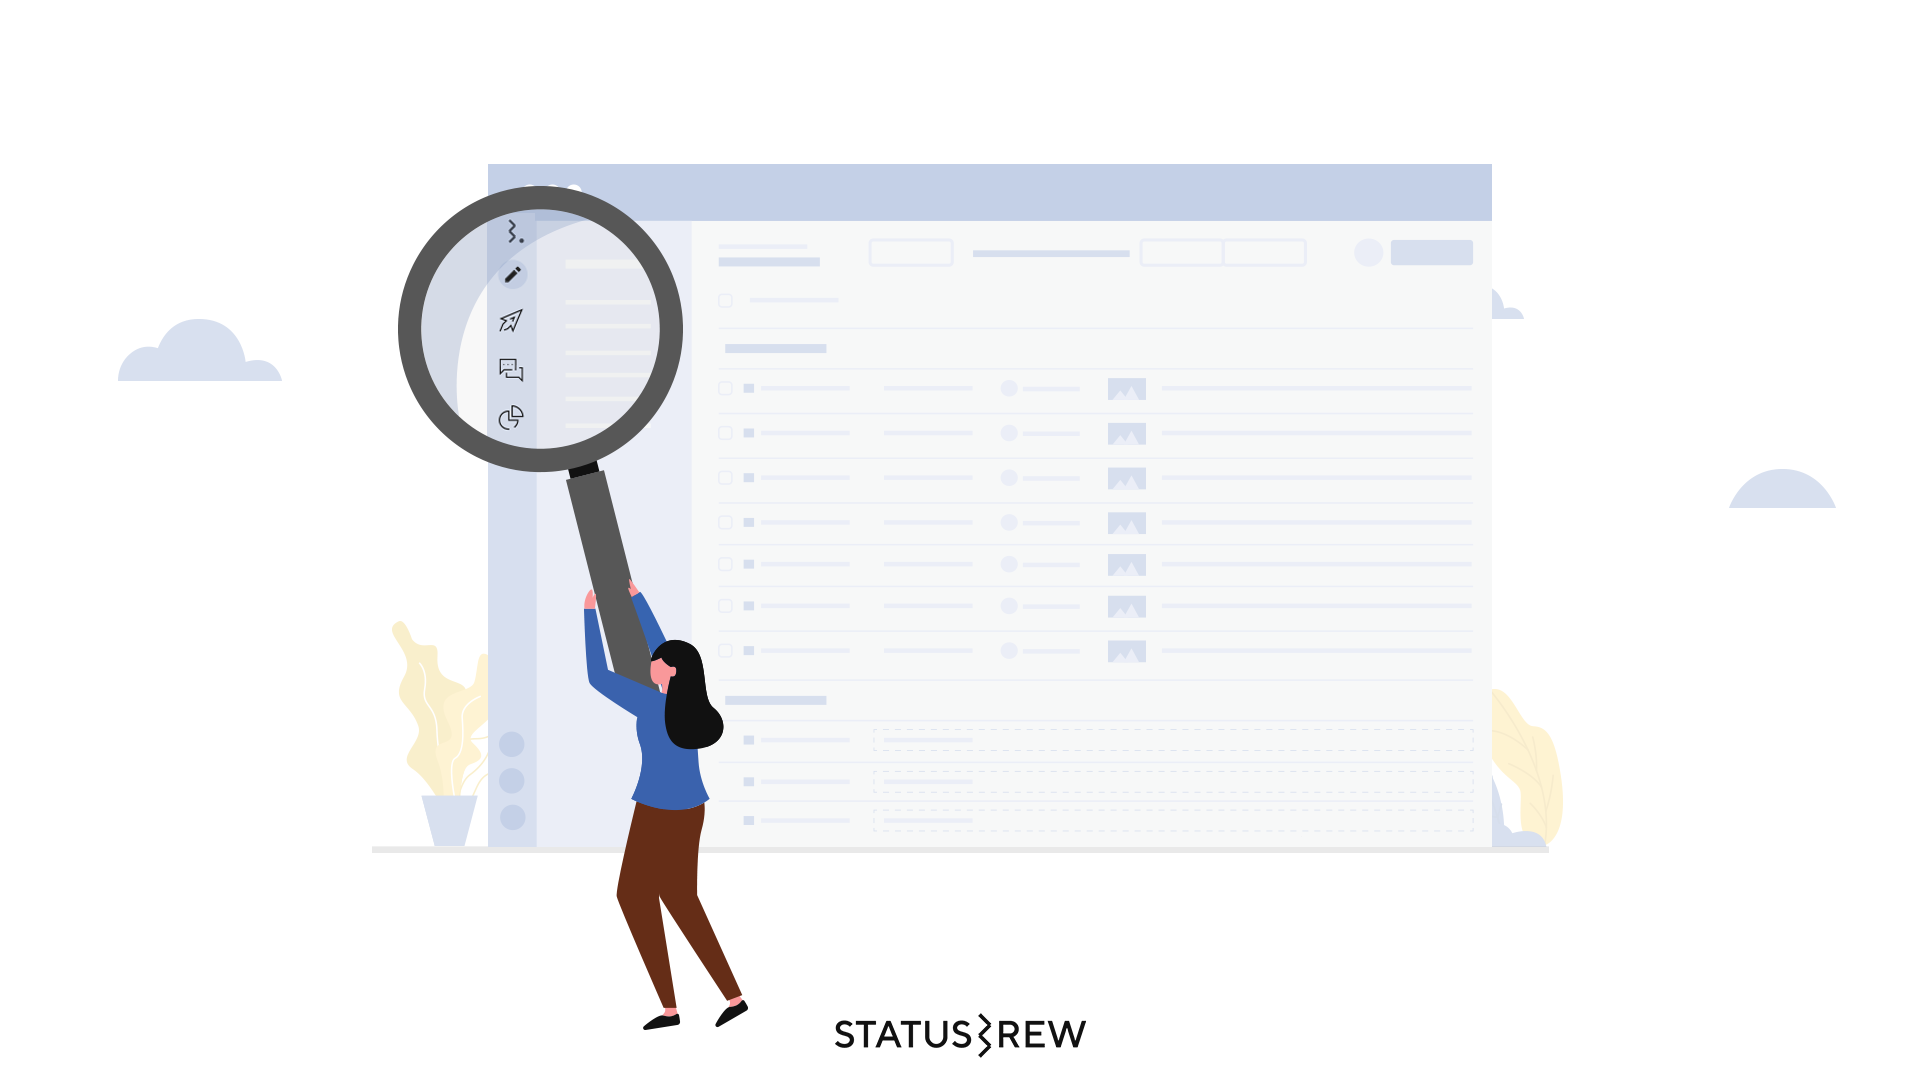 10 Useful Statusbrew Features You Might Not Know About